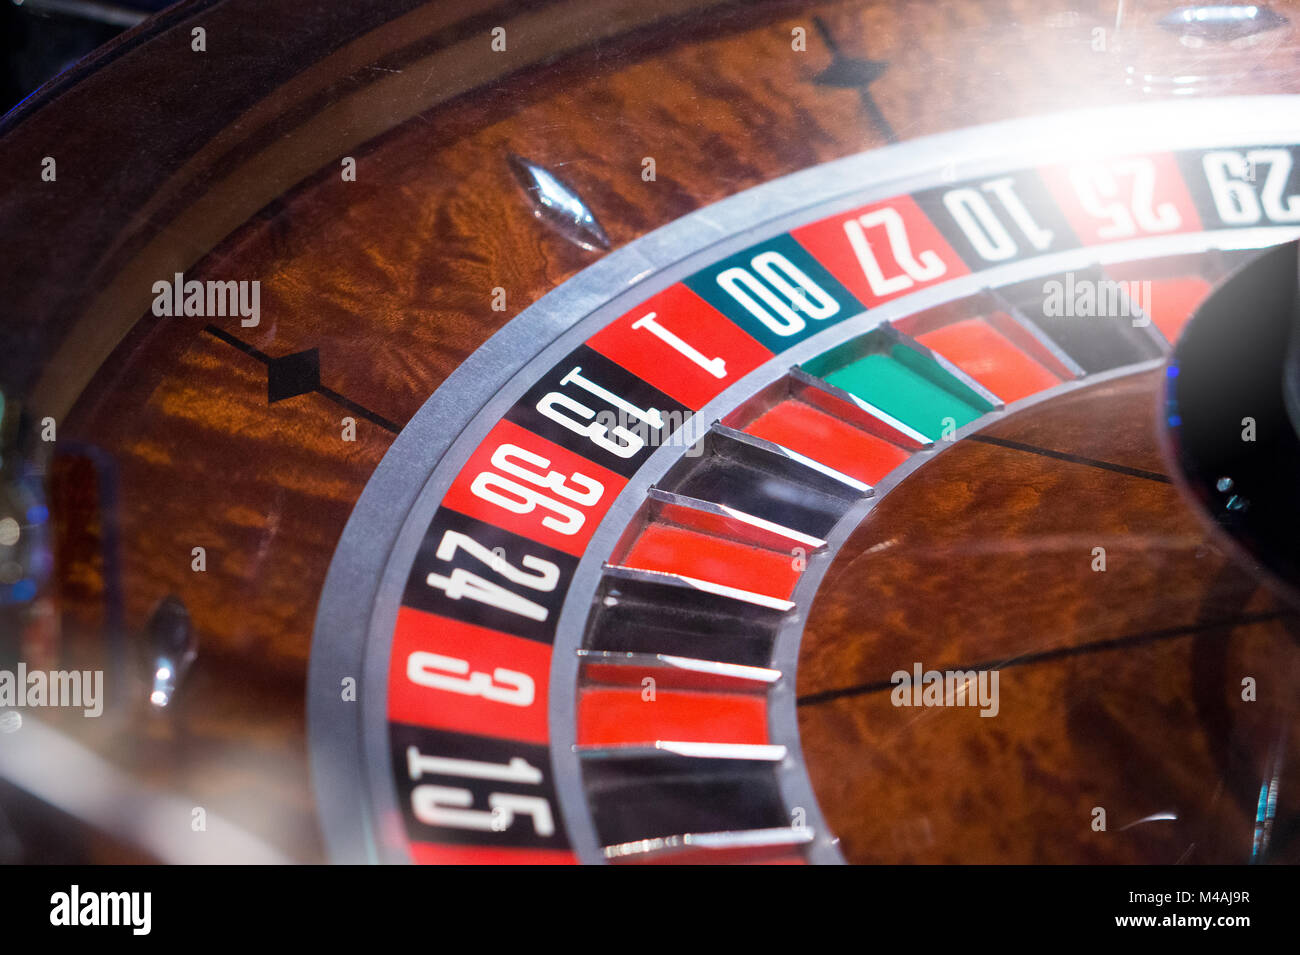 Roulette in casino with shiny light. - Stock Image